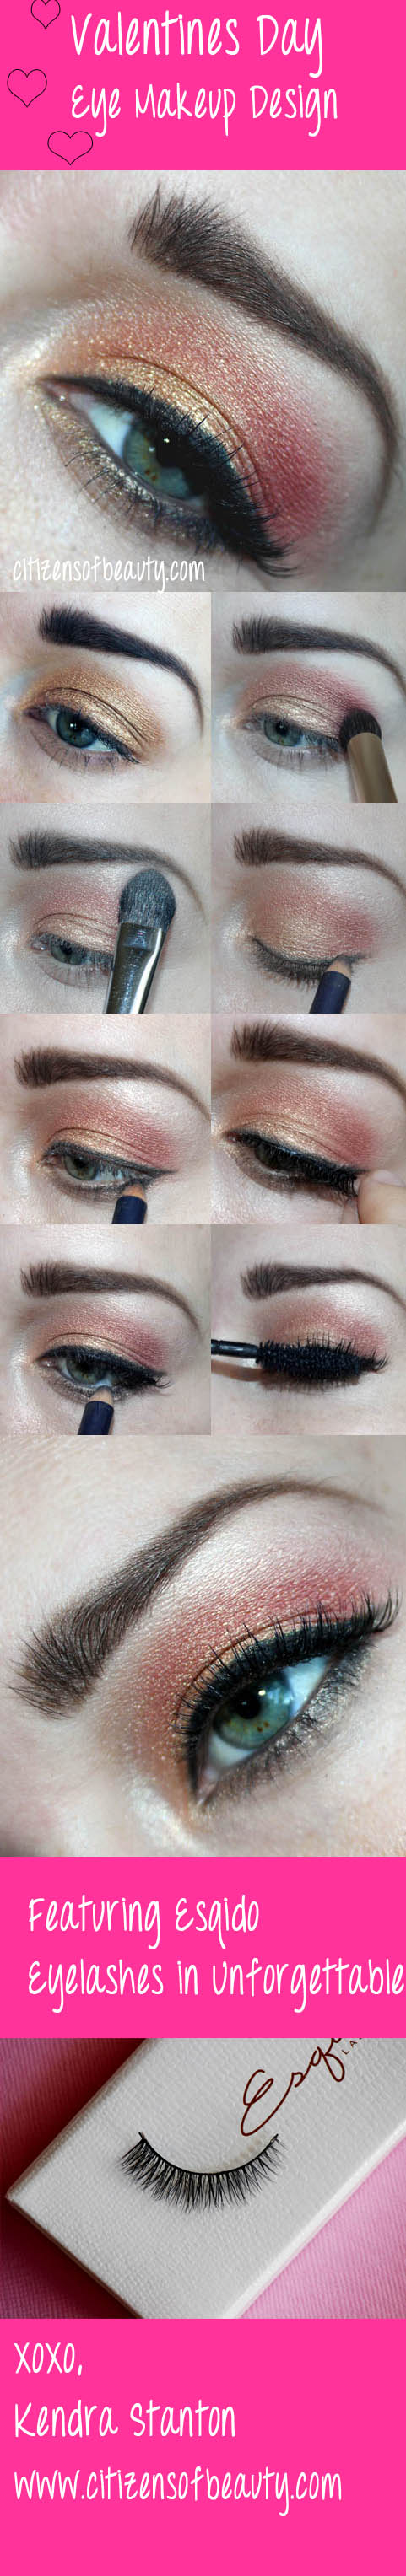 Valentines 2014 Eye Makeup Design